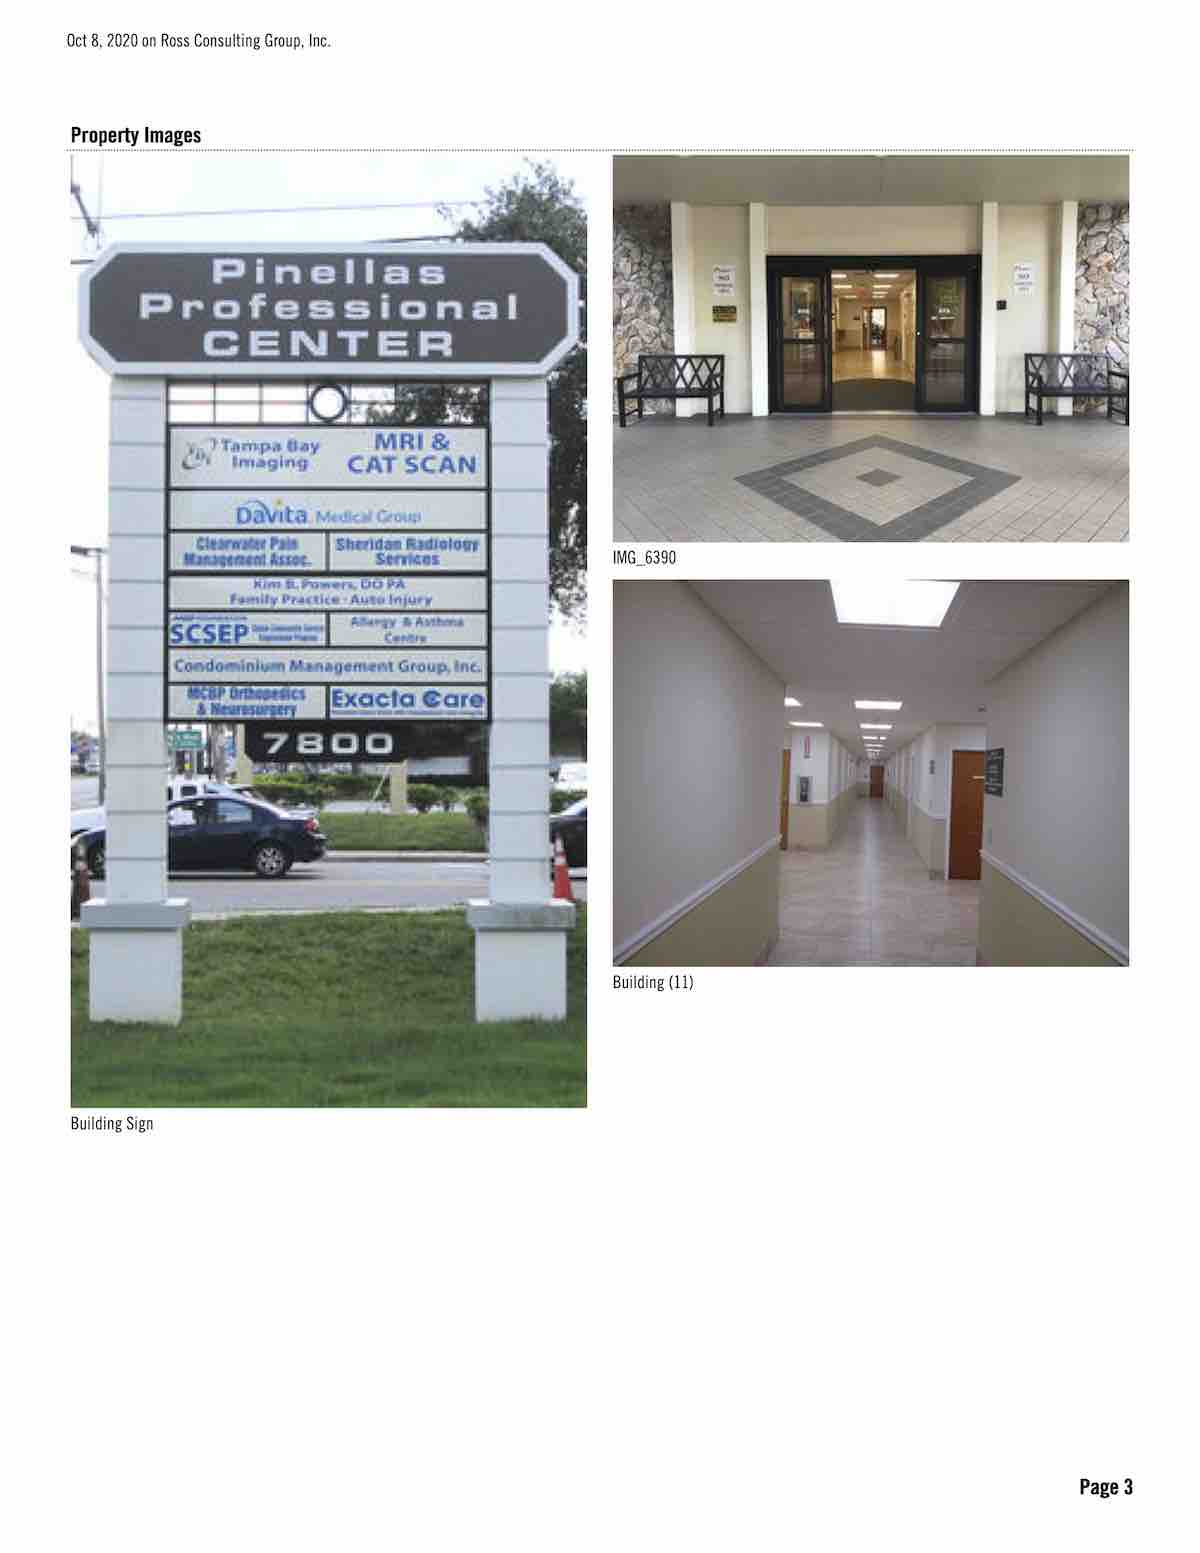 Tampa Commercial Real Estate - FOR LEASE - Pinellas Professional Center - 7800 66th St N, Pinellas Park, FL 33781 P3